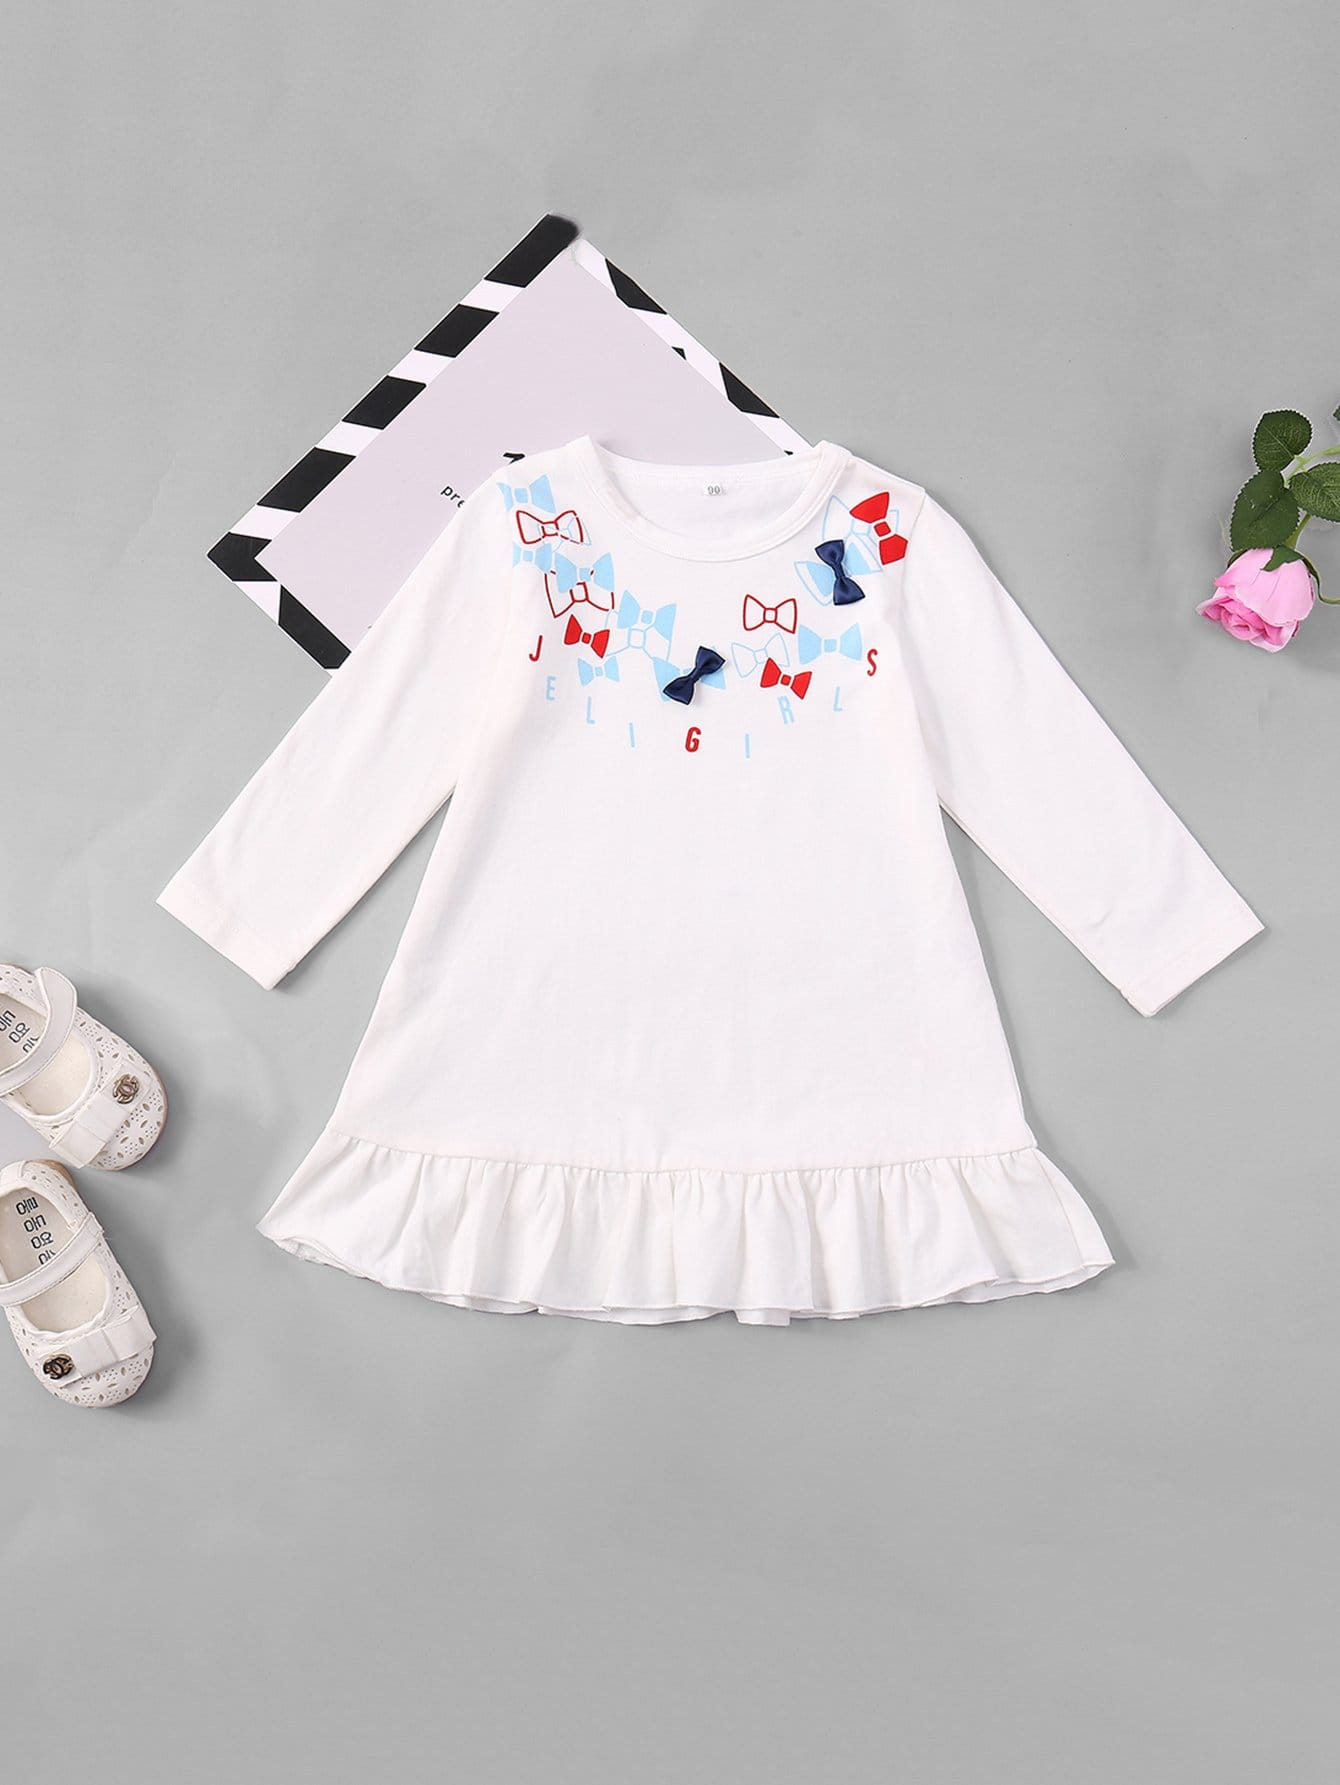 Girls Bow Print Ruffle Hem Dress 2017 new brand baby girls summer dress kids white bow dress for girls children navy leisure fashion girls clothes